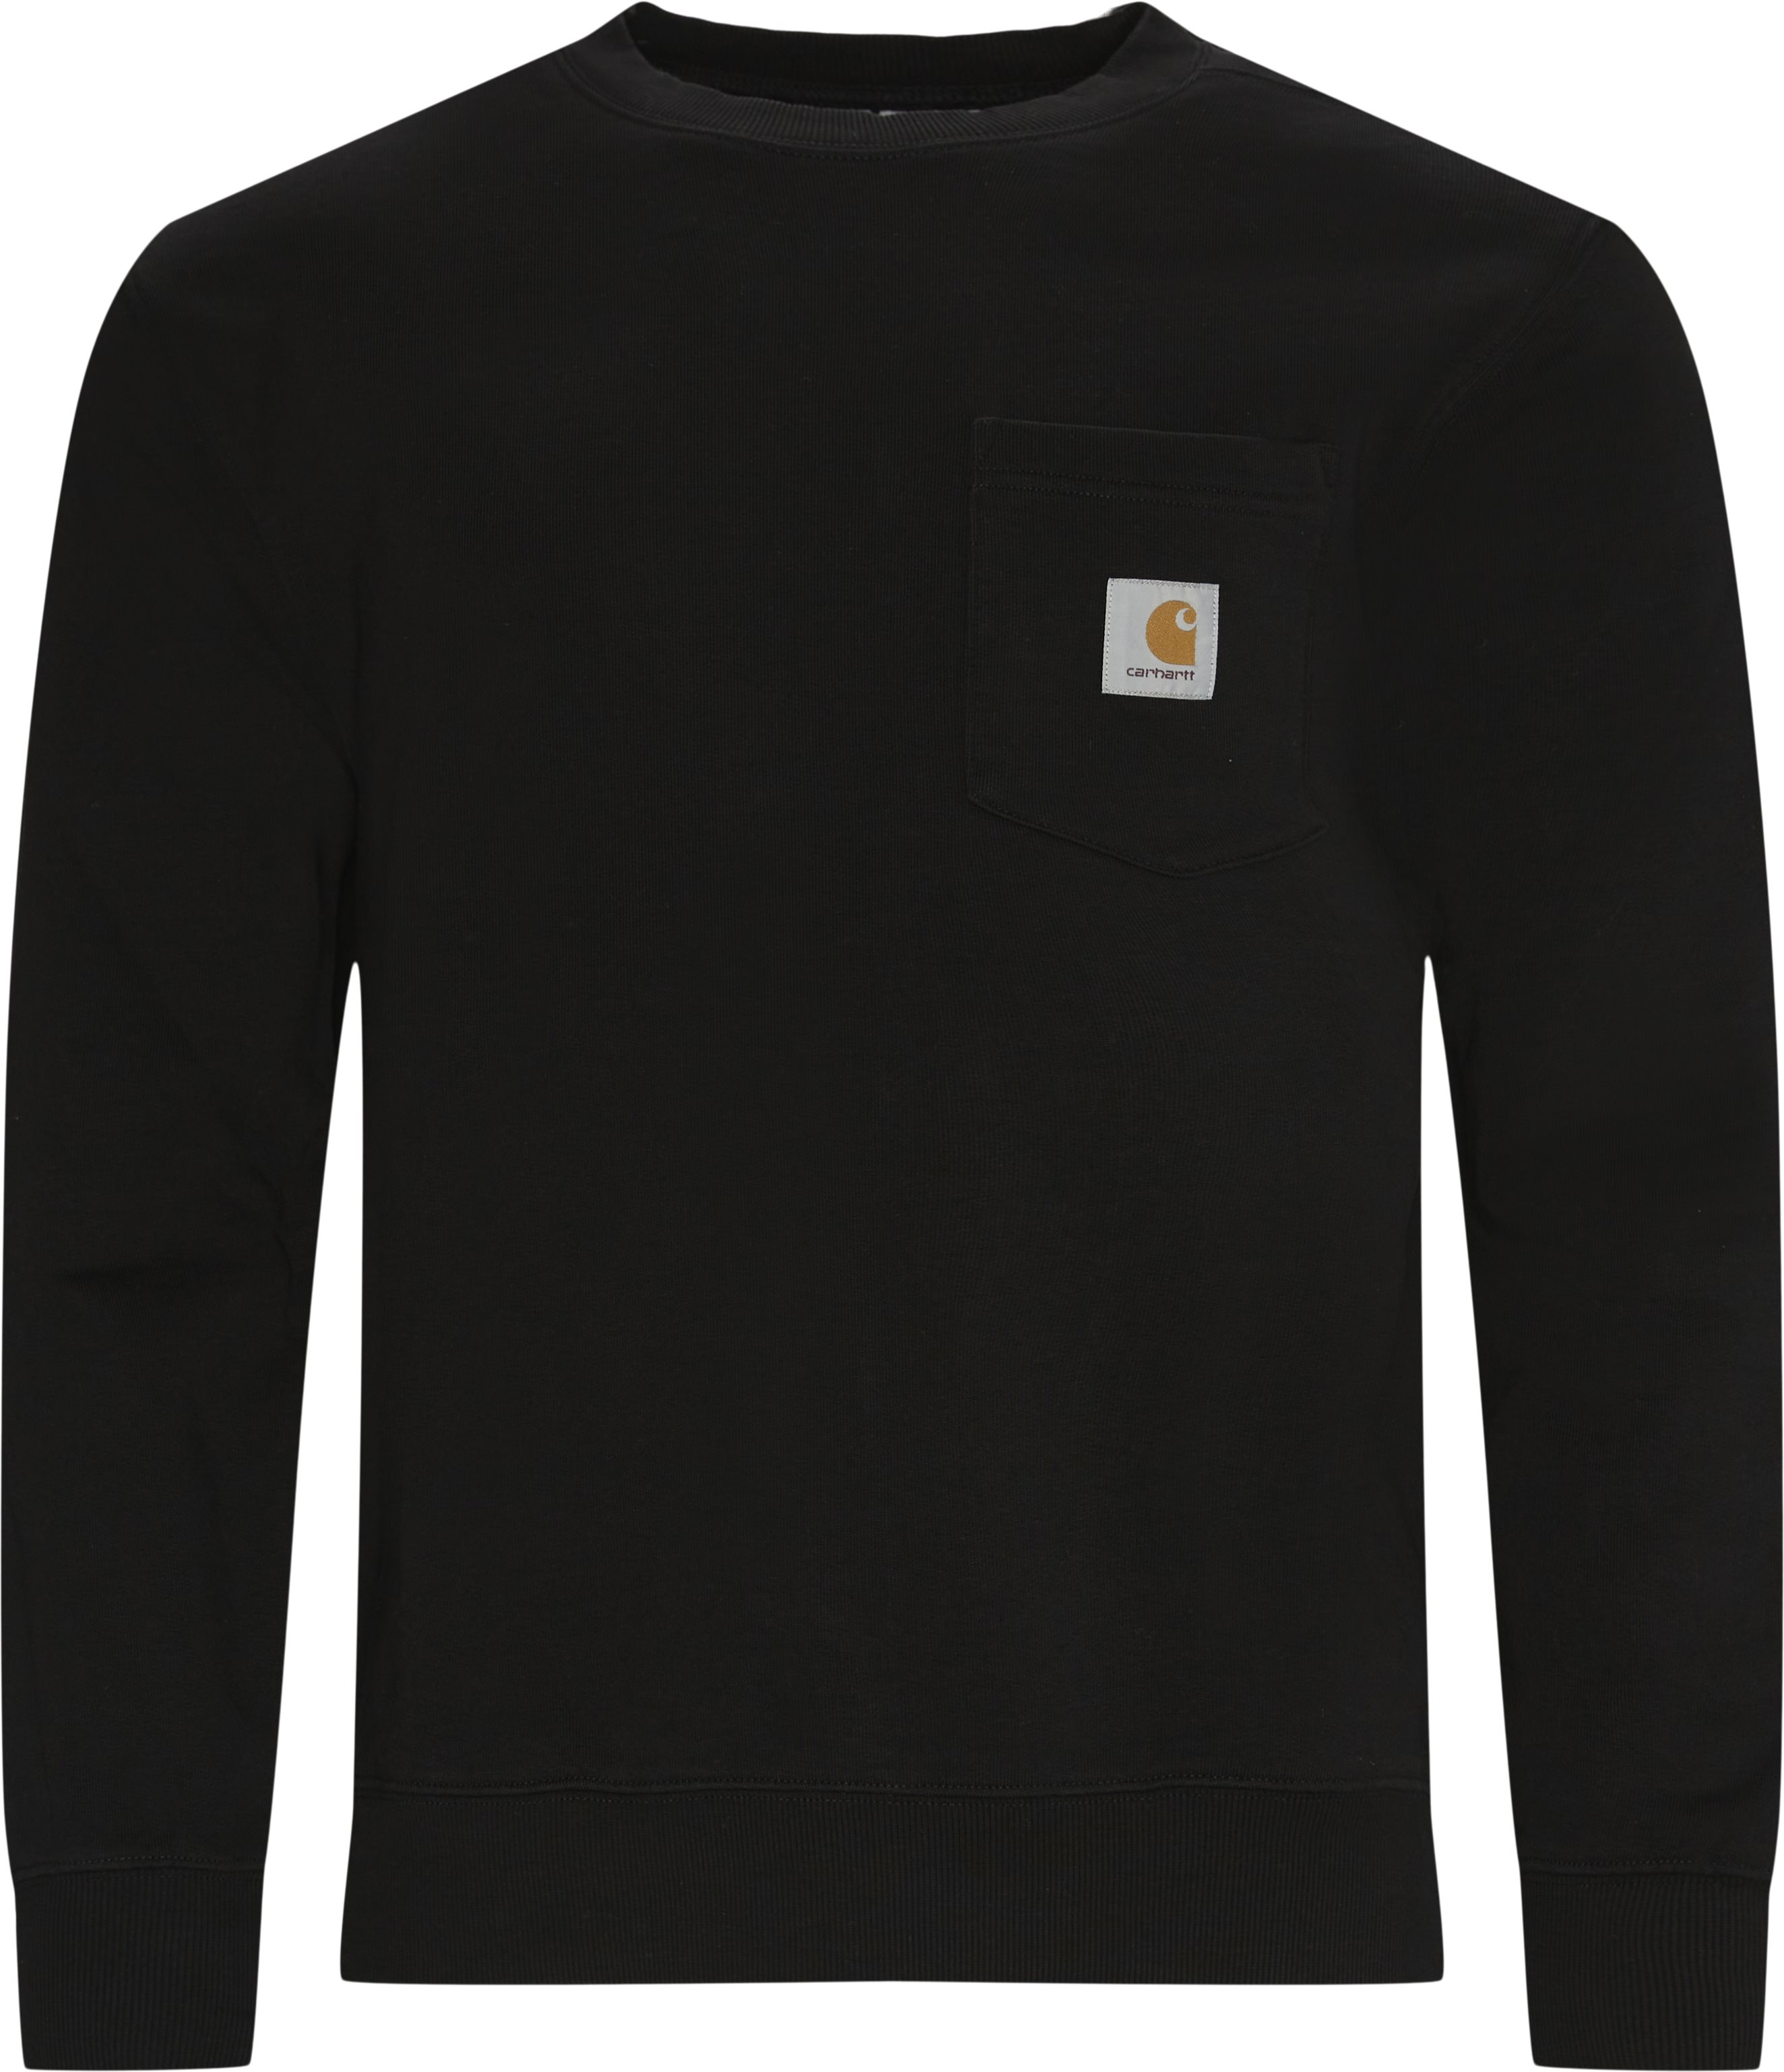 Pocket Sweatshirt - Sweatshirts - Regular - Sort